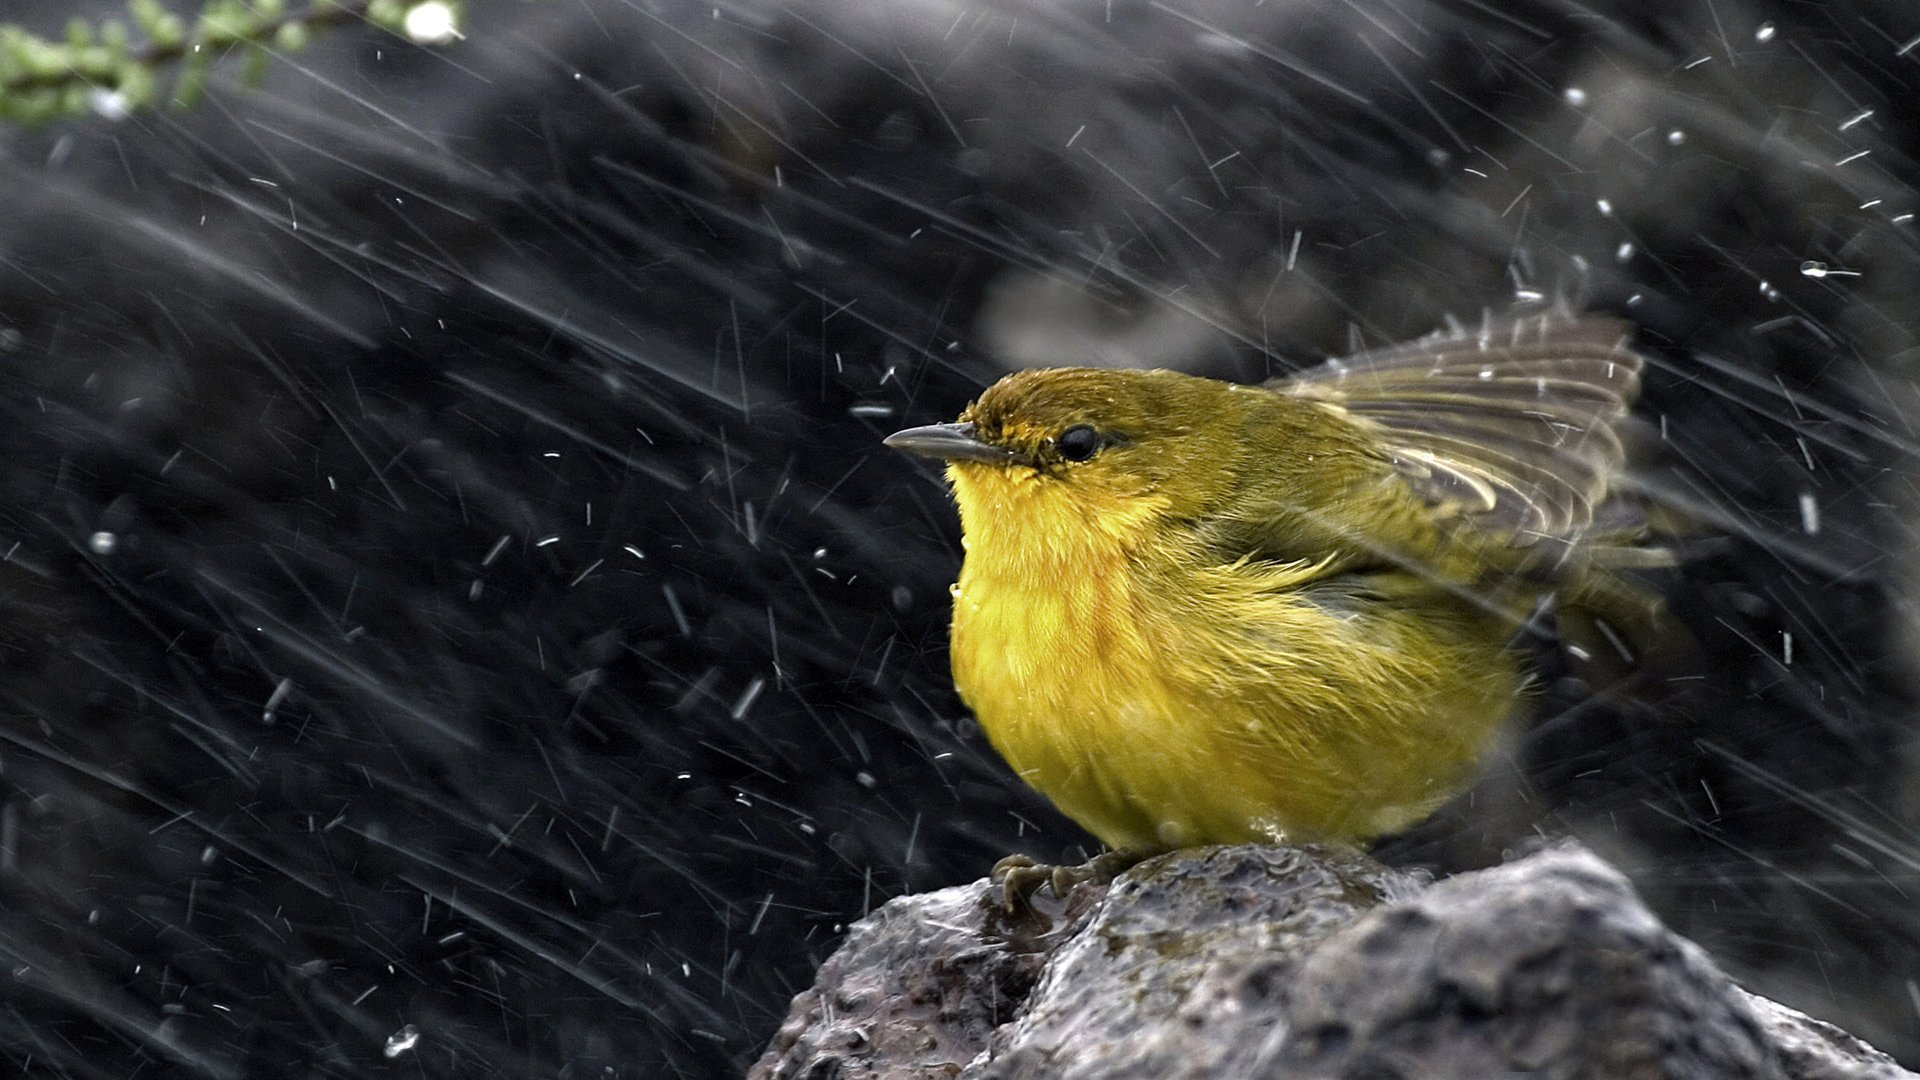 Cute Bird in Rainy Weather - 10 Awesome raindrop Wallpapers